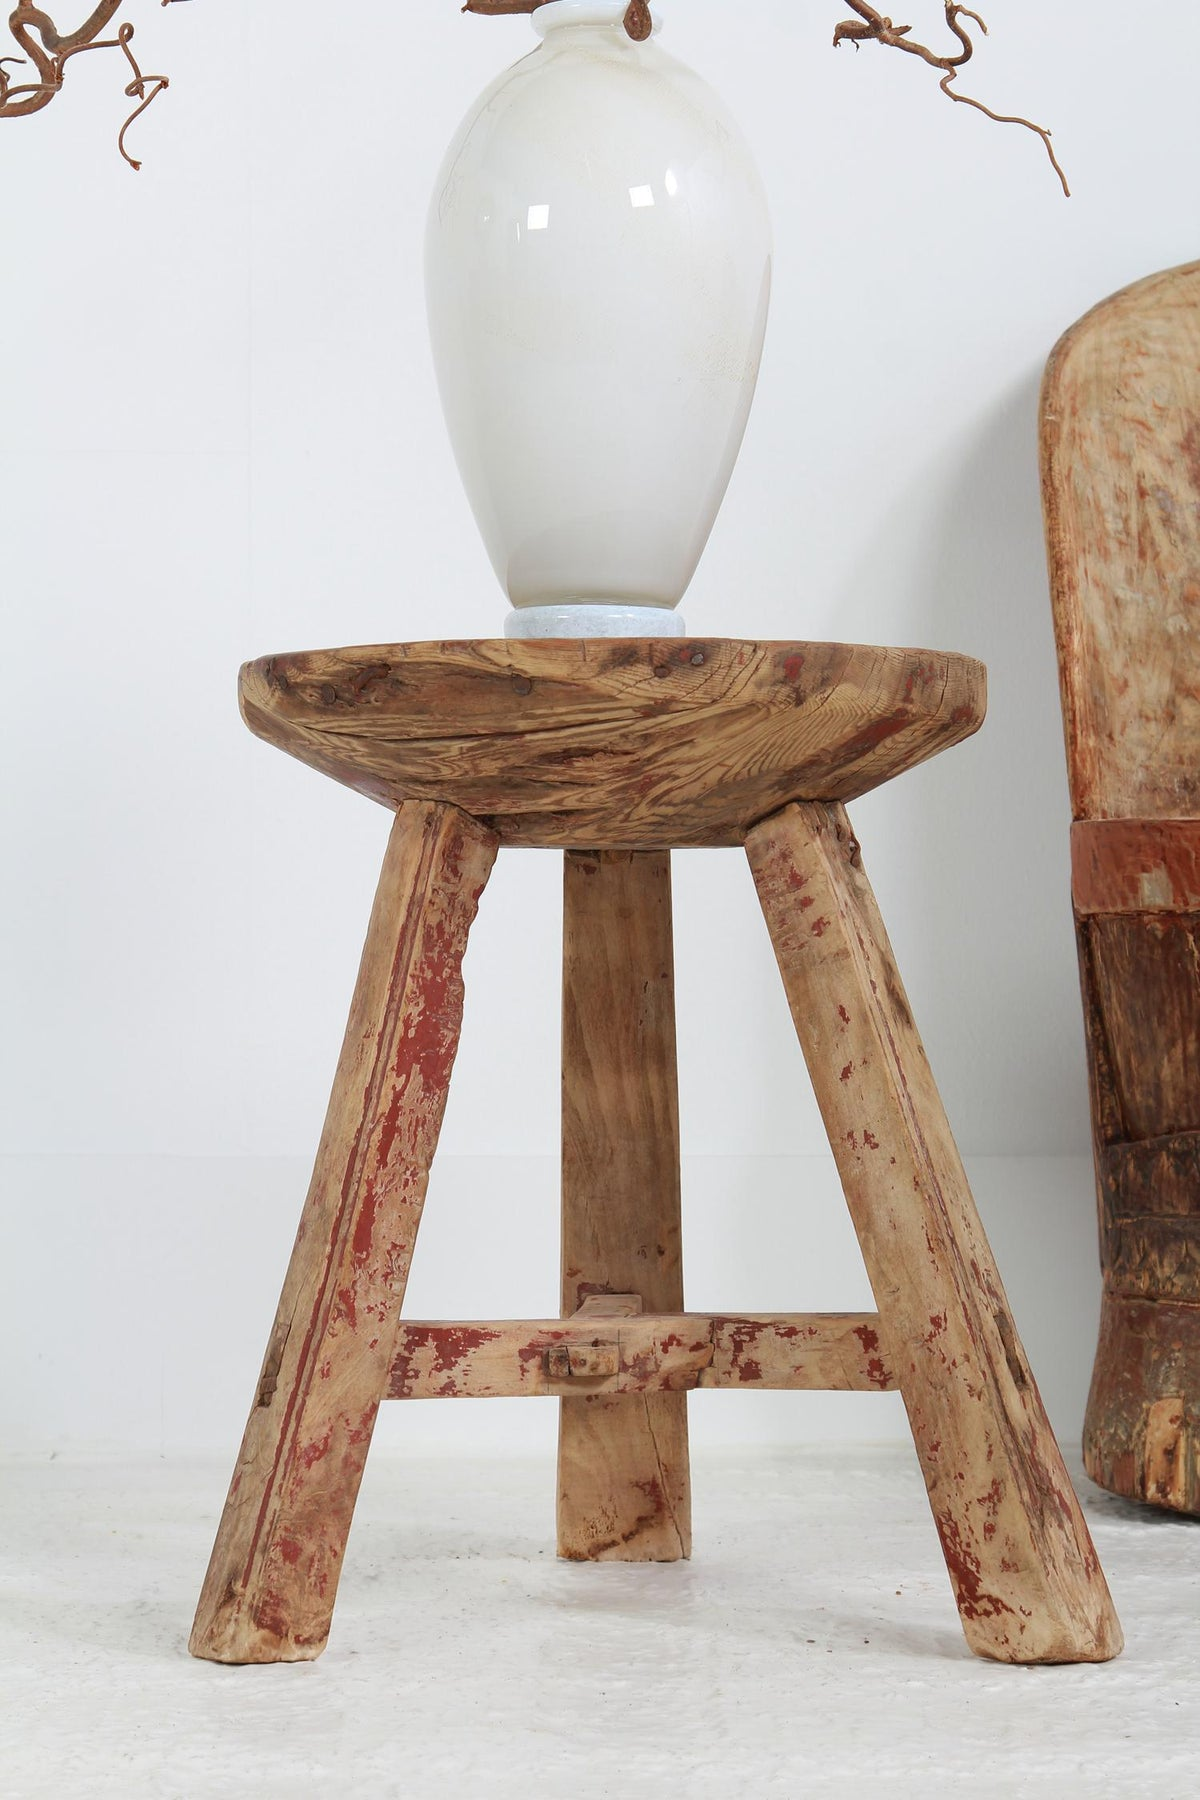 Primitive Chinese BUTCHER BLOCK TABLE/STOOL